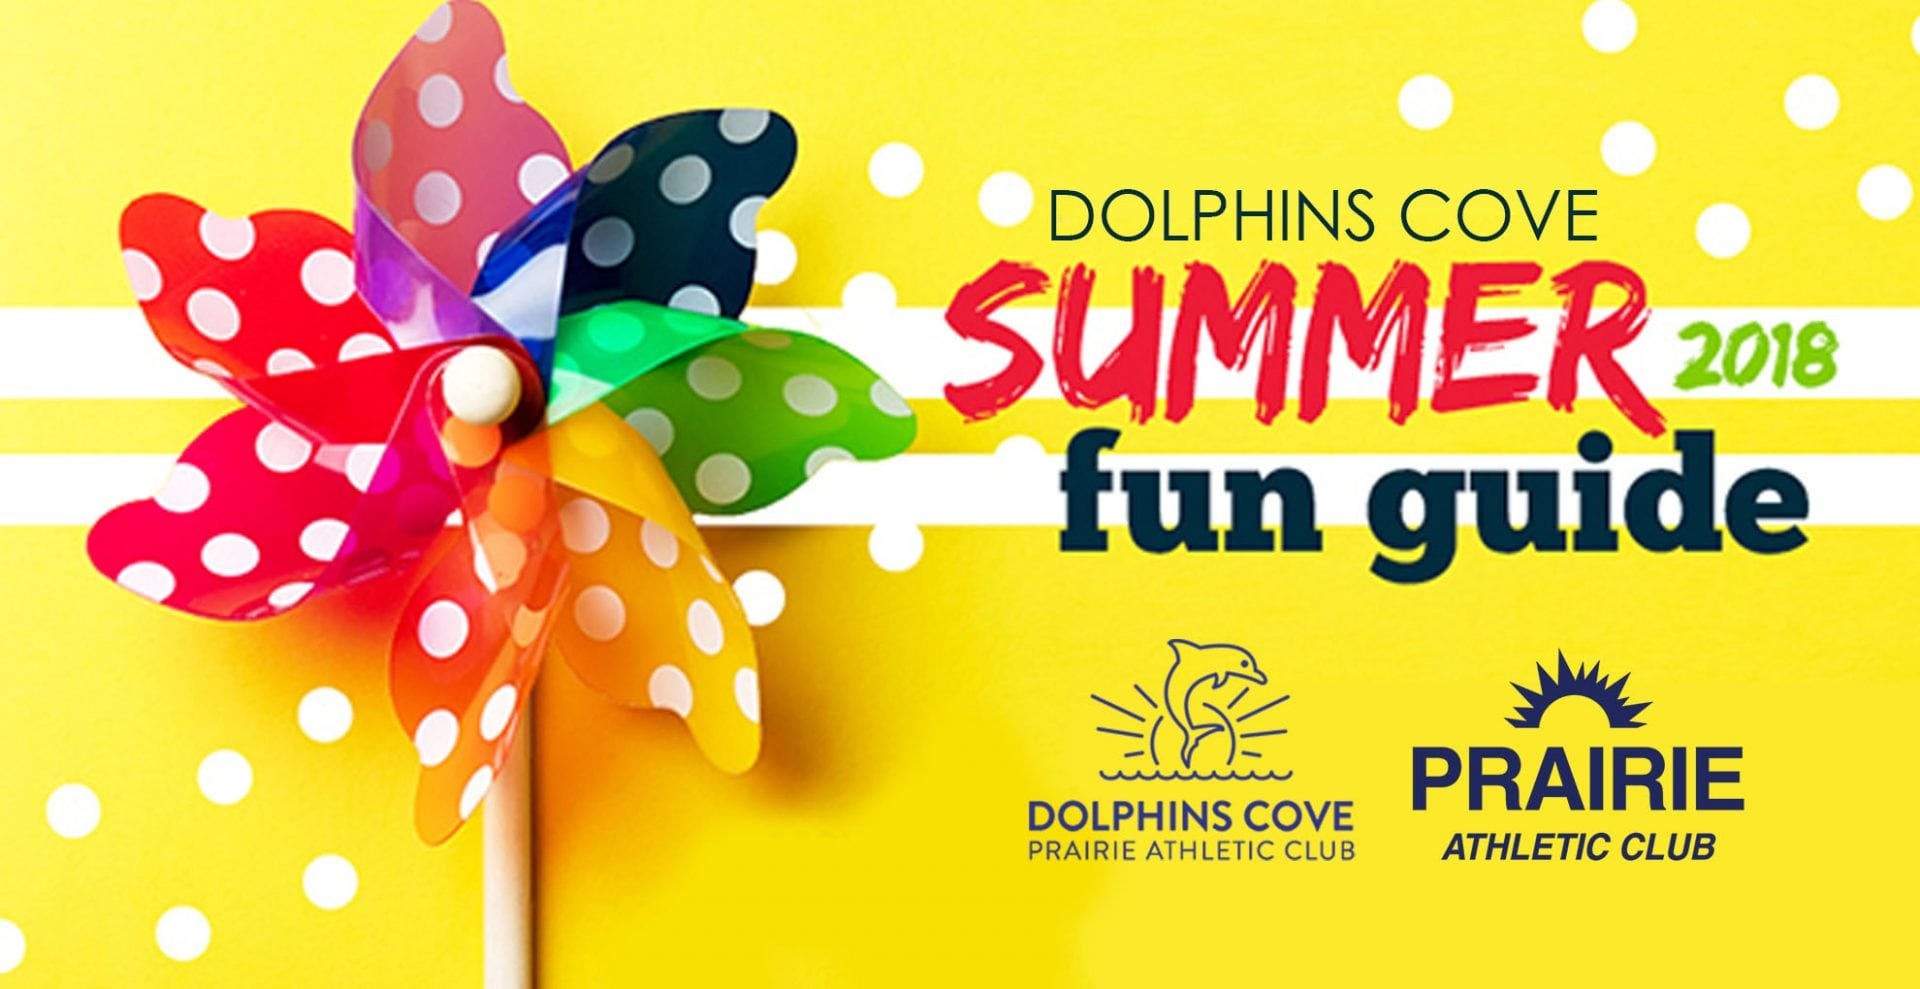 Dolphin's Cove Summer 2018